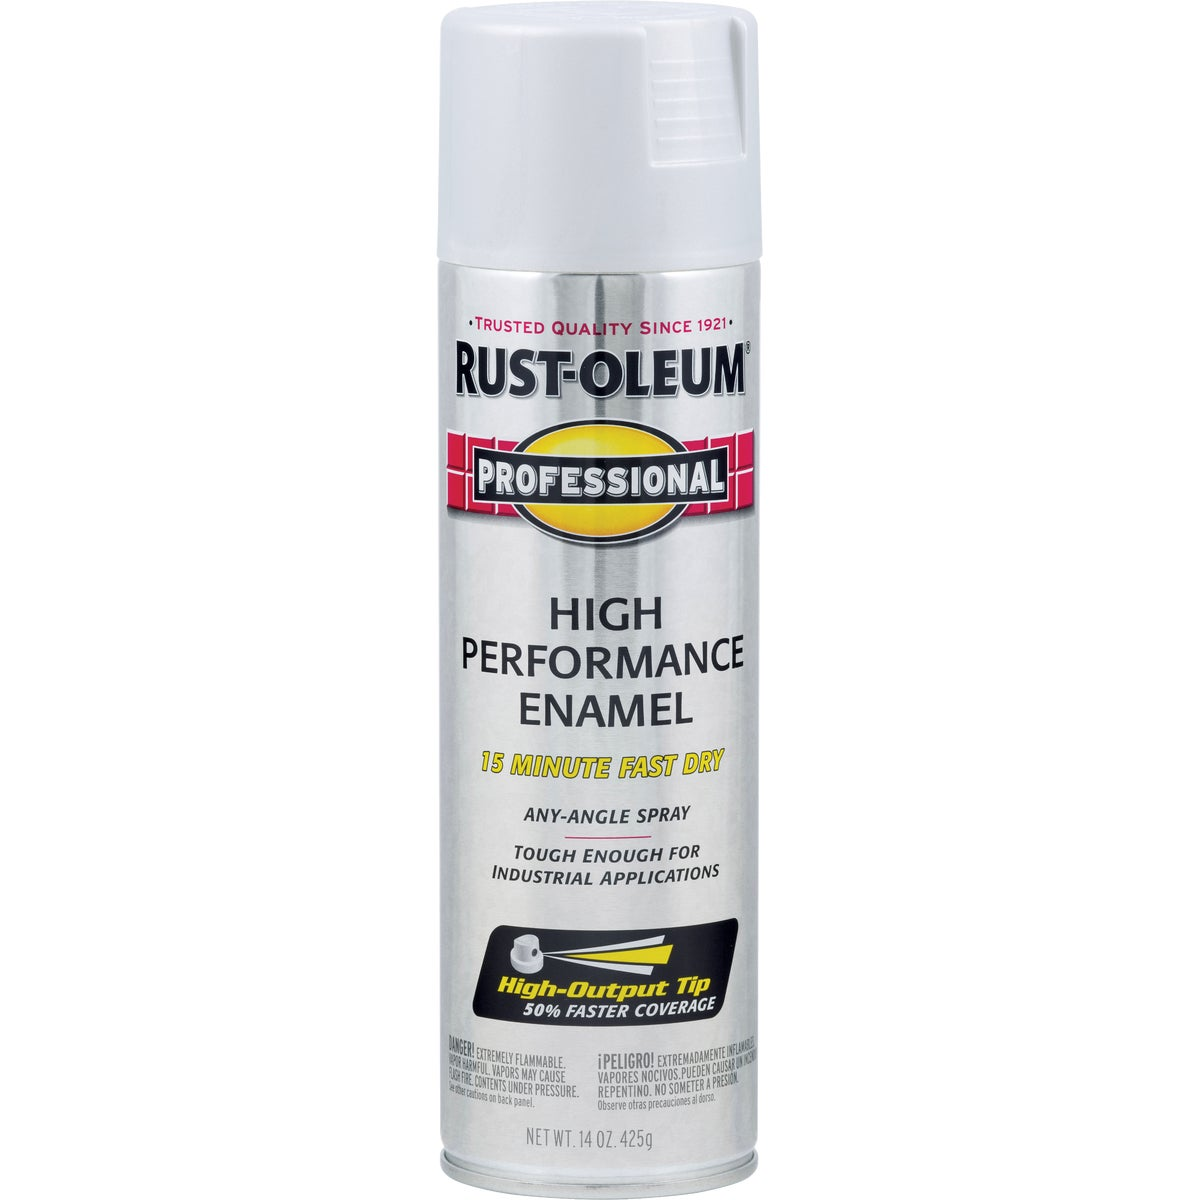 ALUMINUM PRO SPRAY PAINT - 7515-838 by Rustoleum